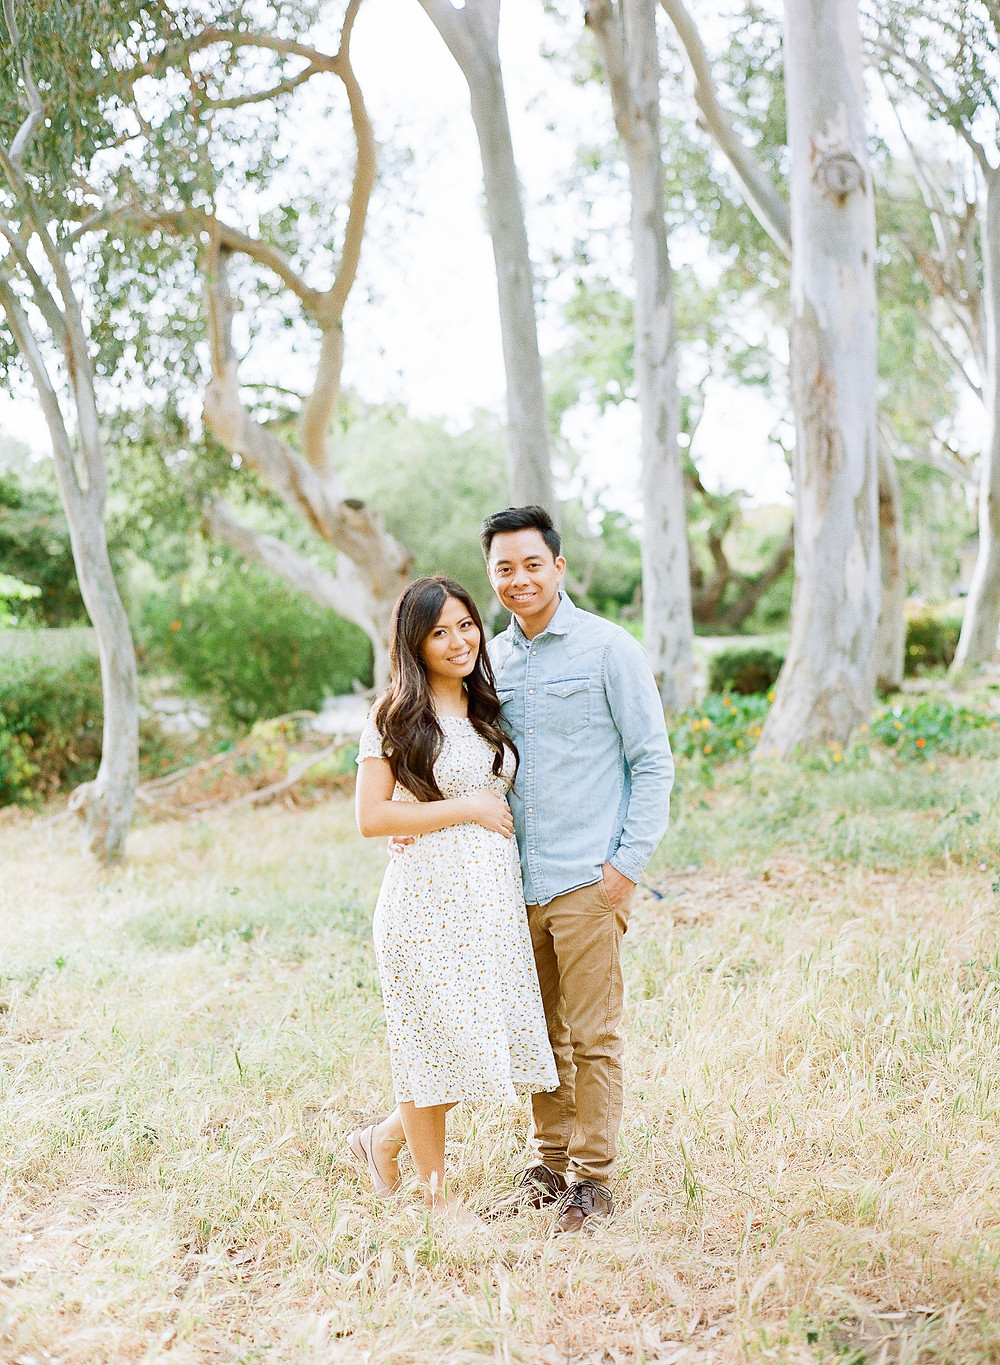 Pregnancy Announcement asian couple smiling looking at camera